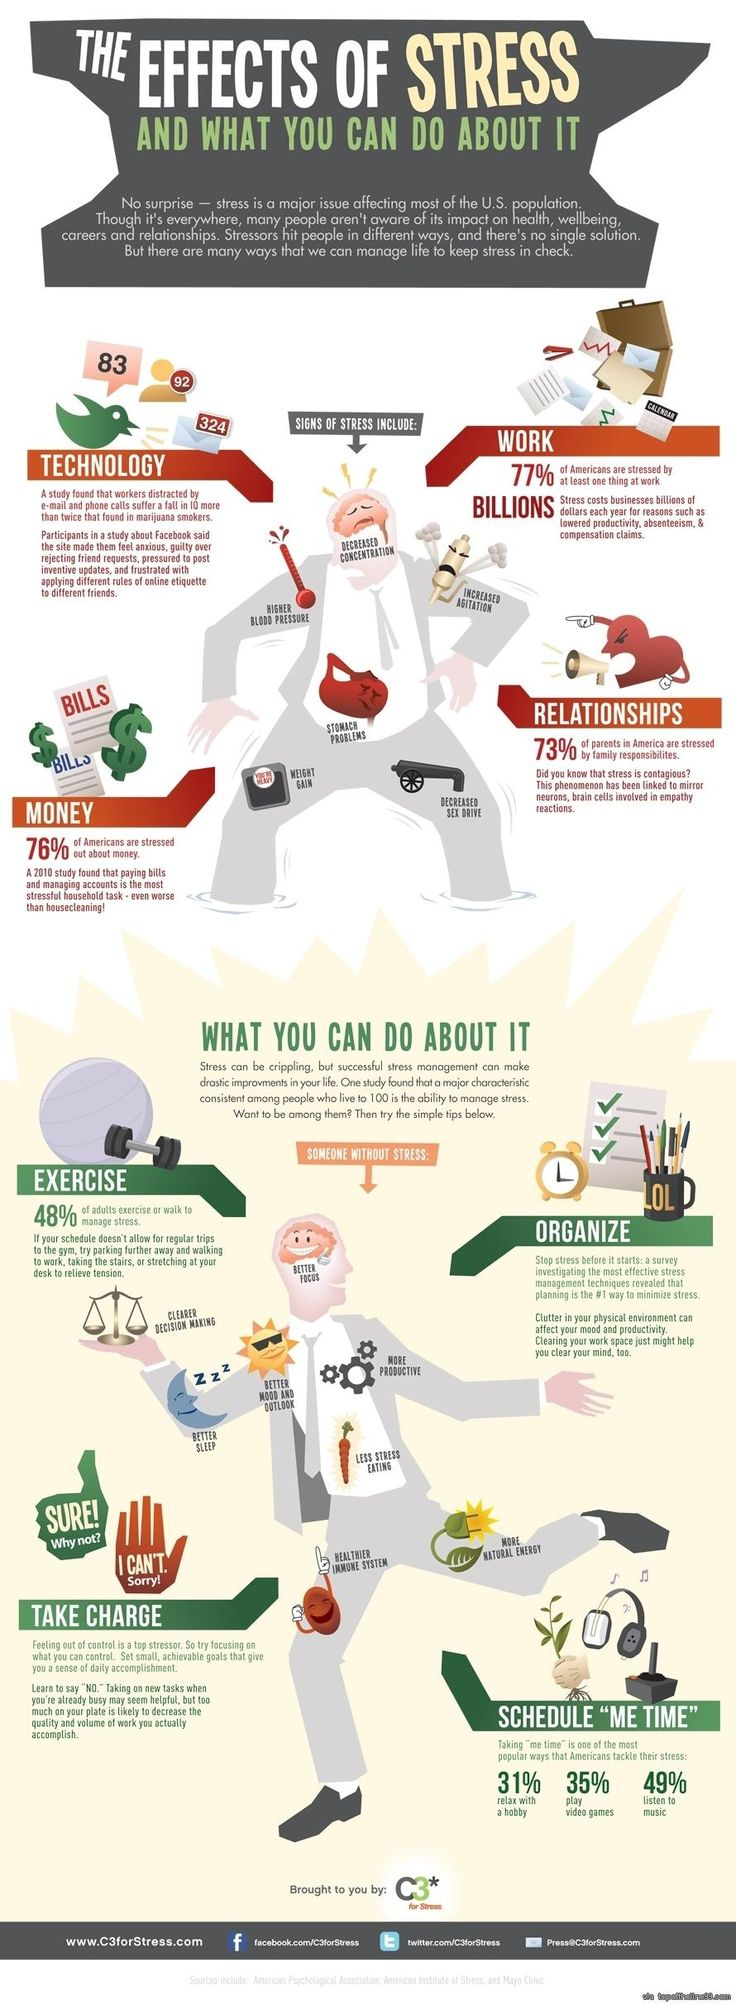 The Effects of Stress and What You Can Do About It | Buzzfeed | Repinned by @keilonegordon